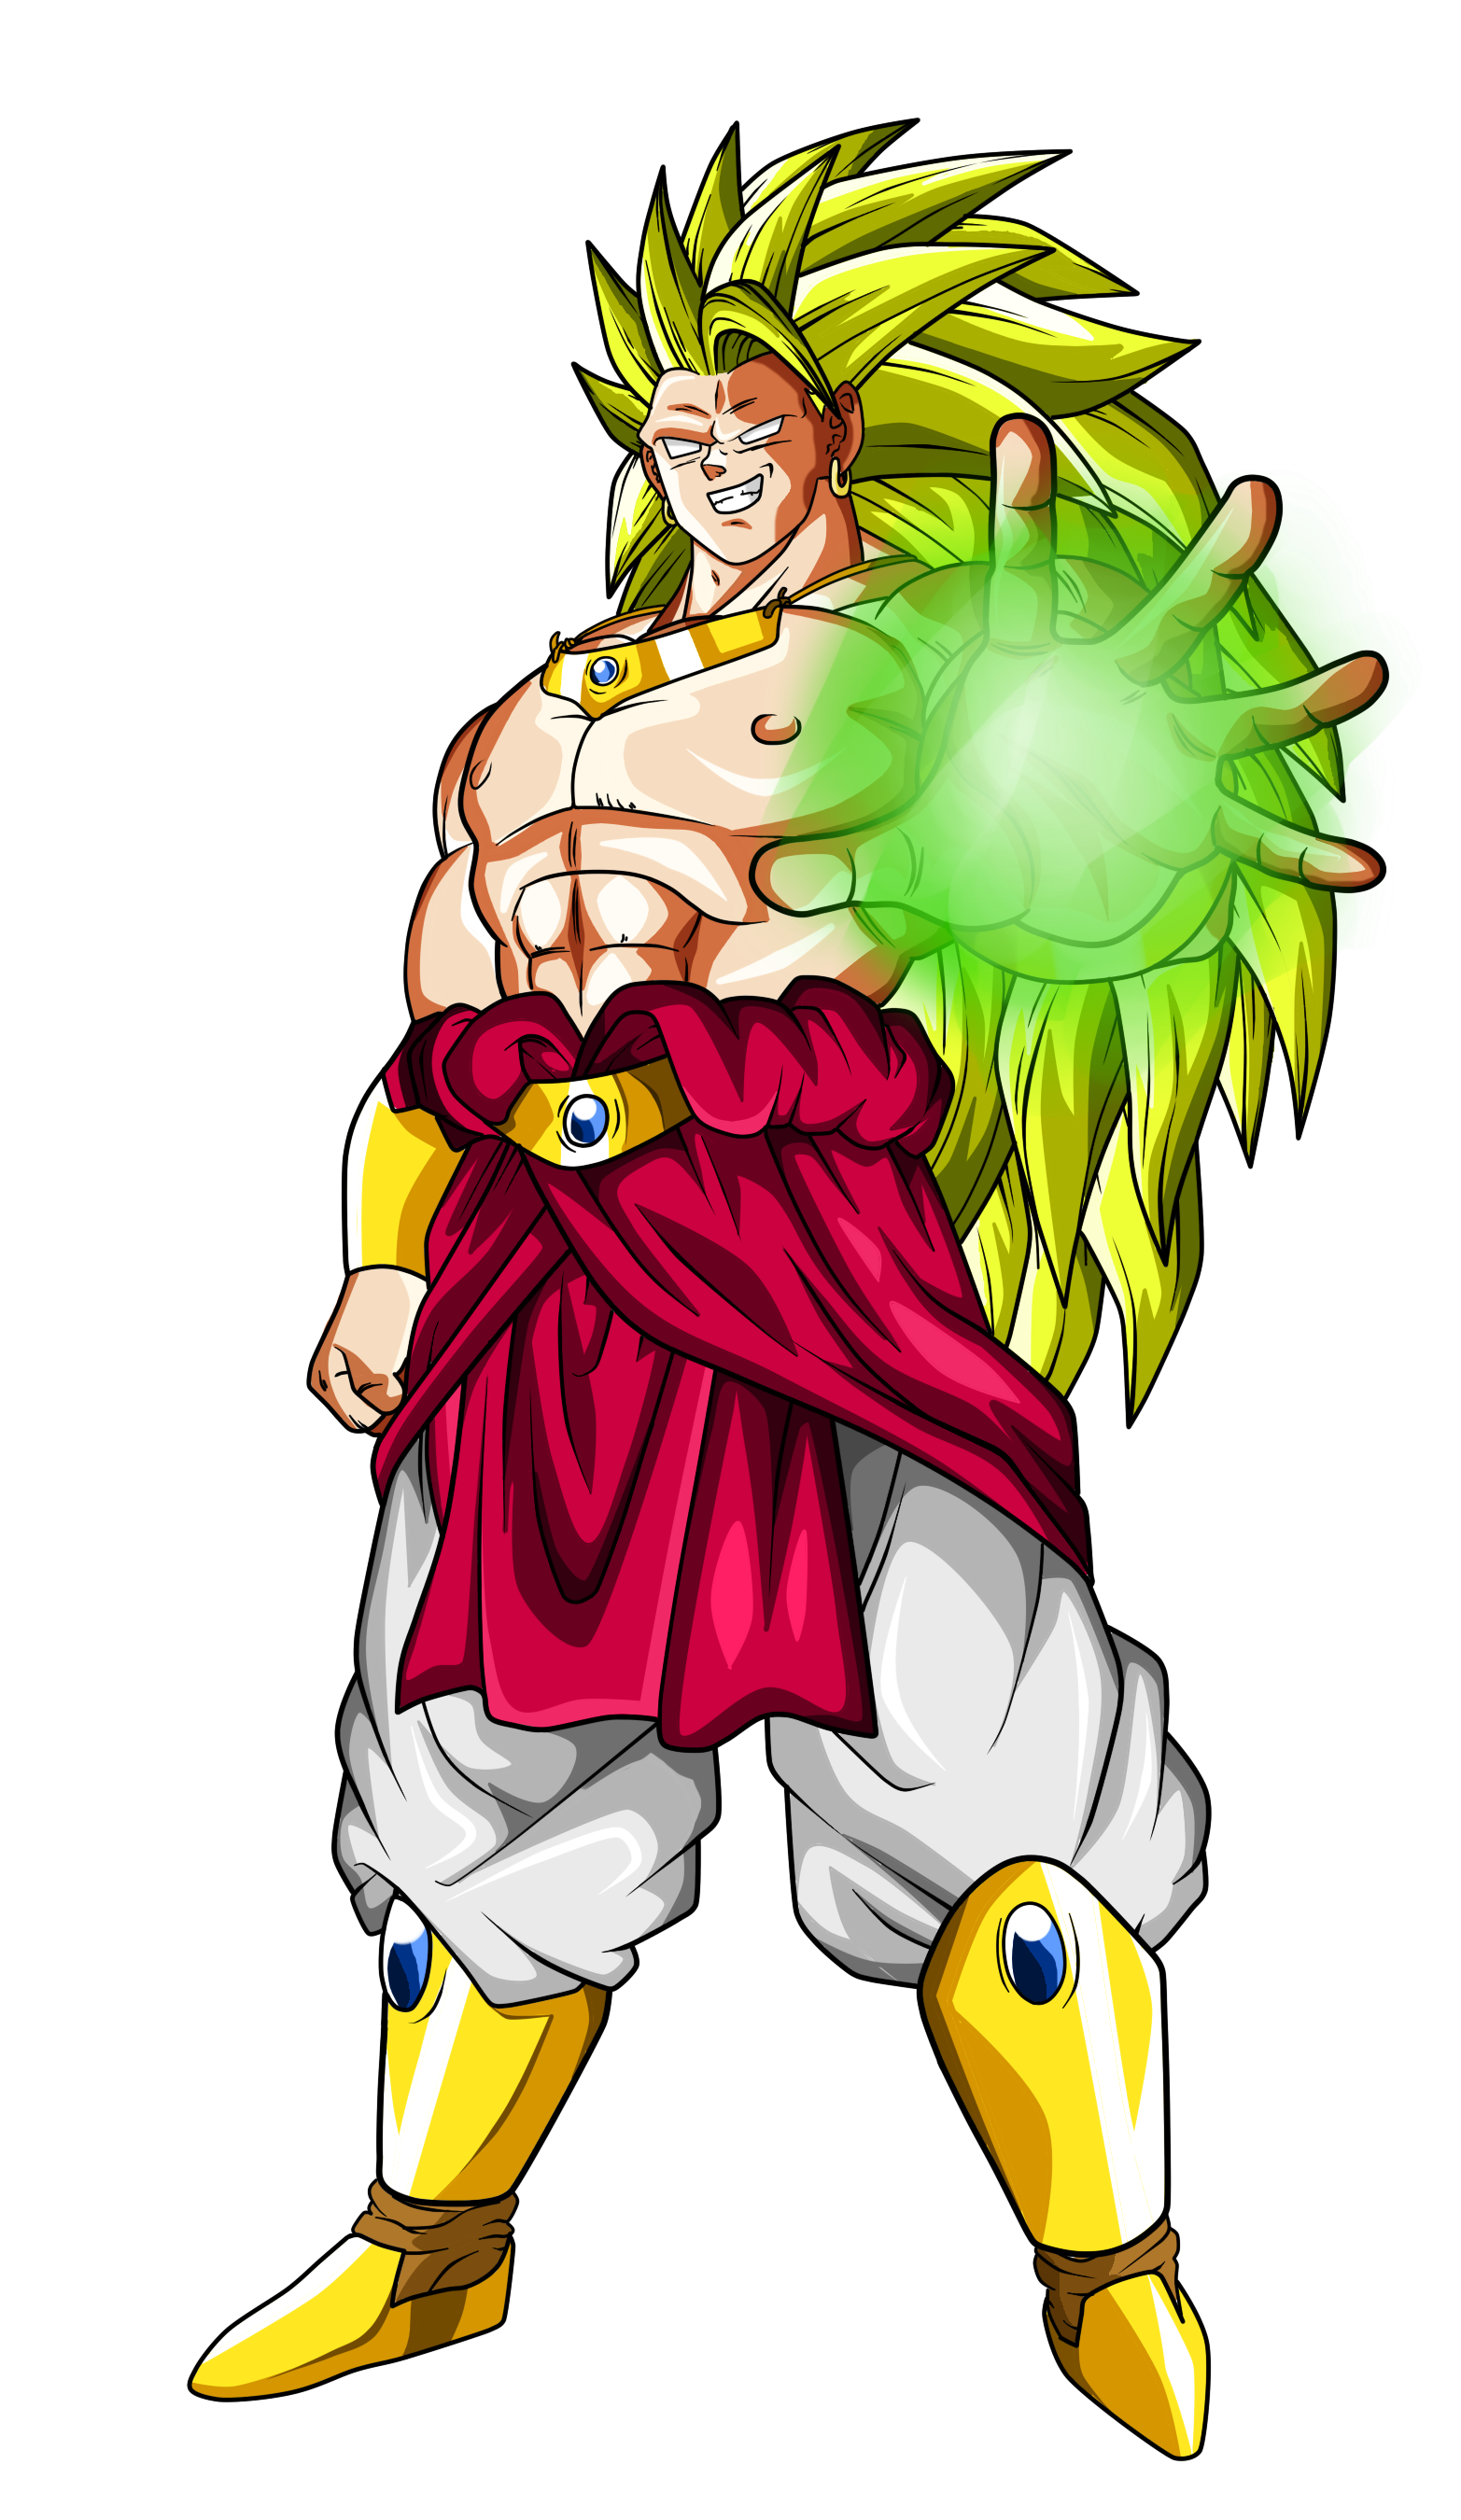 Dragon ball z broly png. Images transparent free download